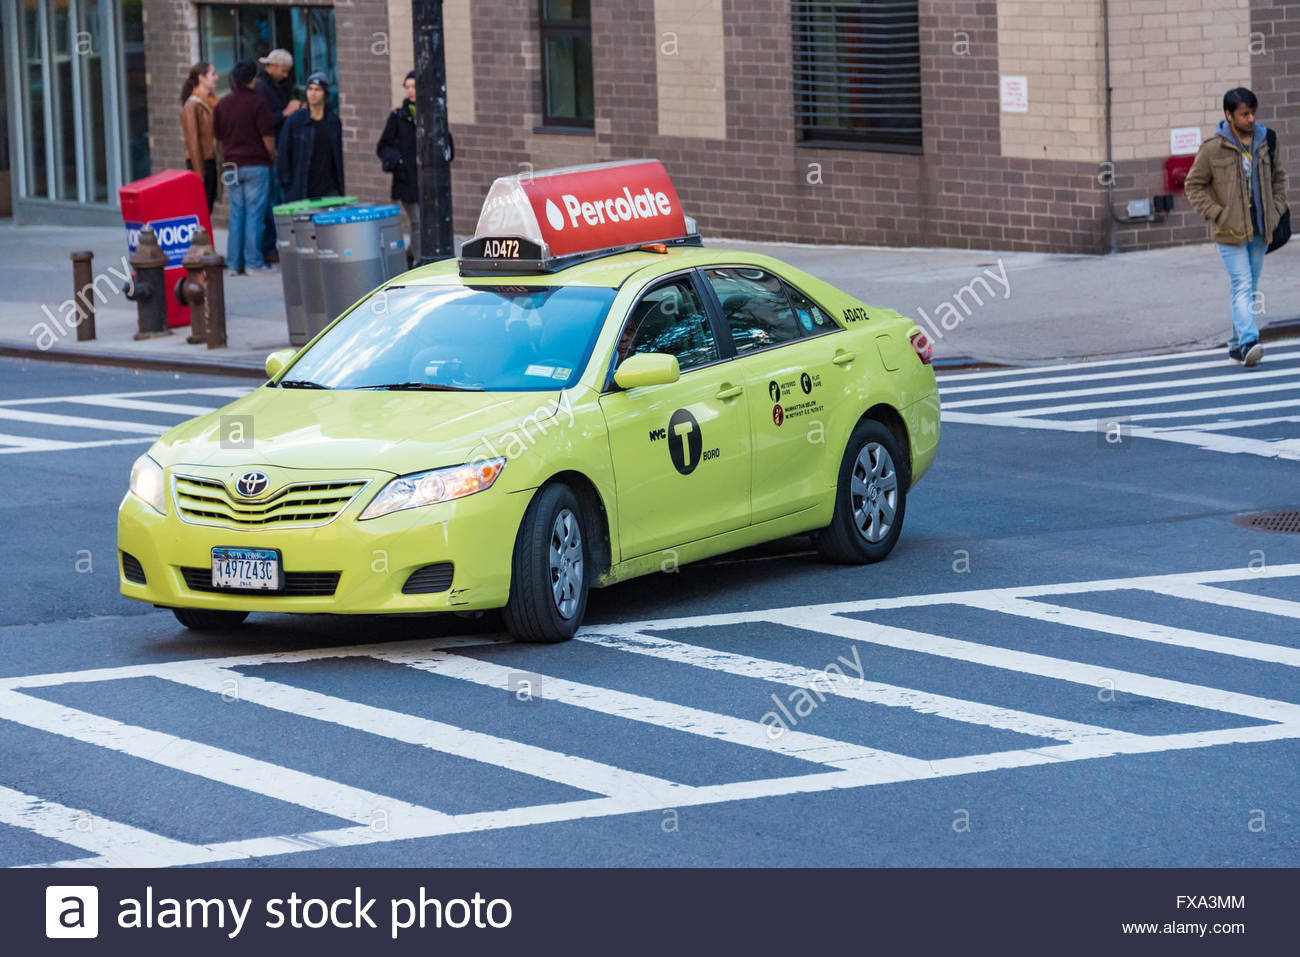 New York City: Toyota green taxi cab making a turn on a busy